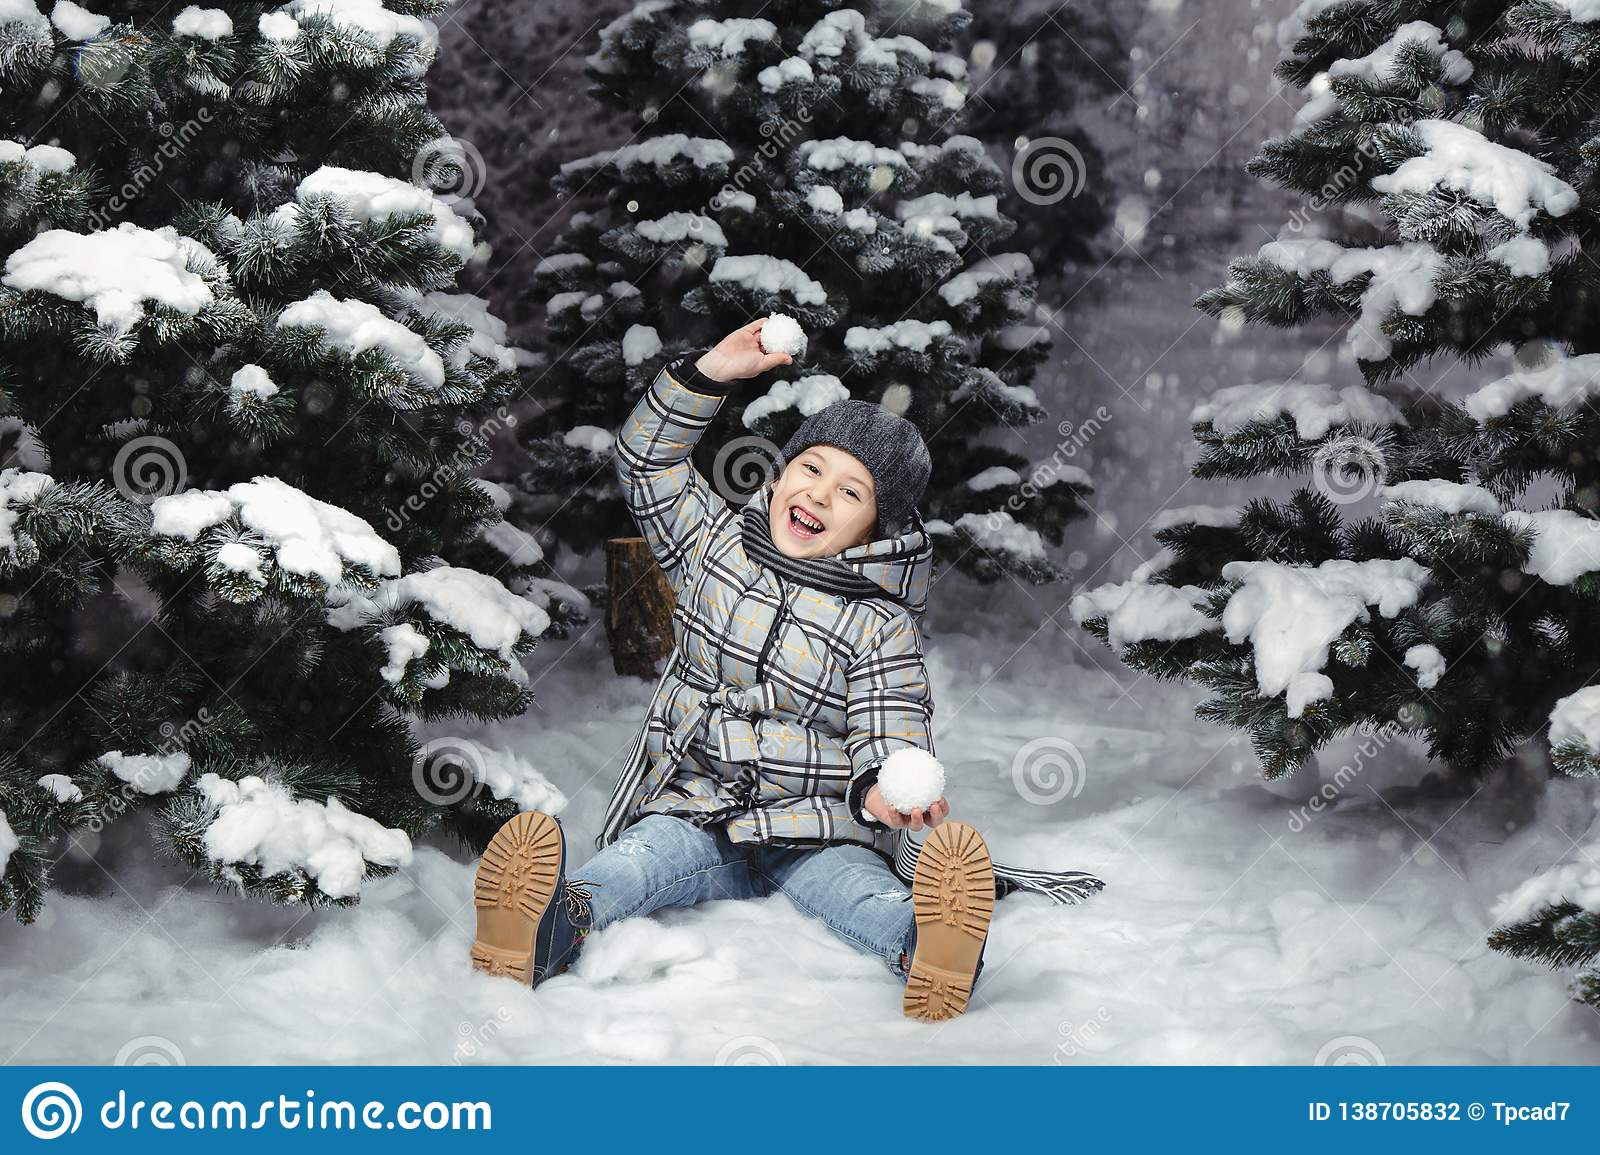 A little girl in winter clothes playing with snow on a snowy meadow surrounded by fir trees. Christmas concept. Studio